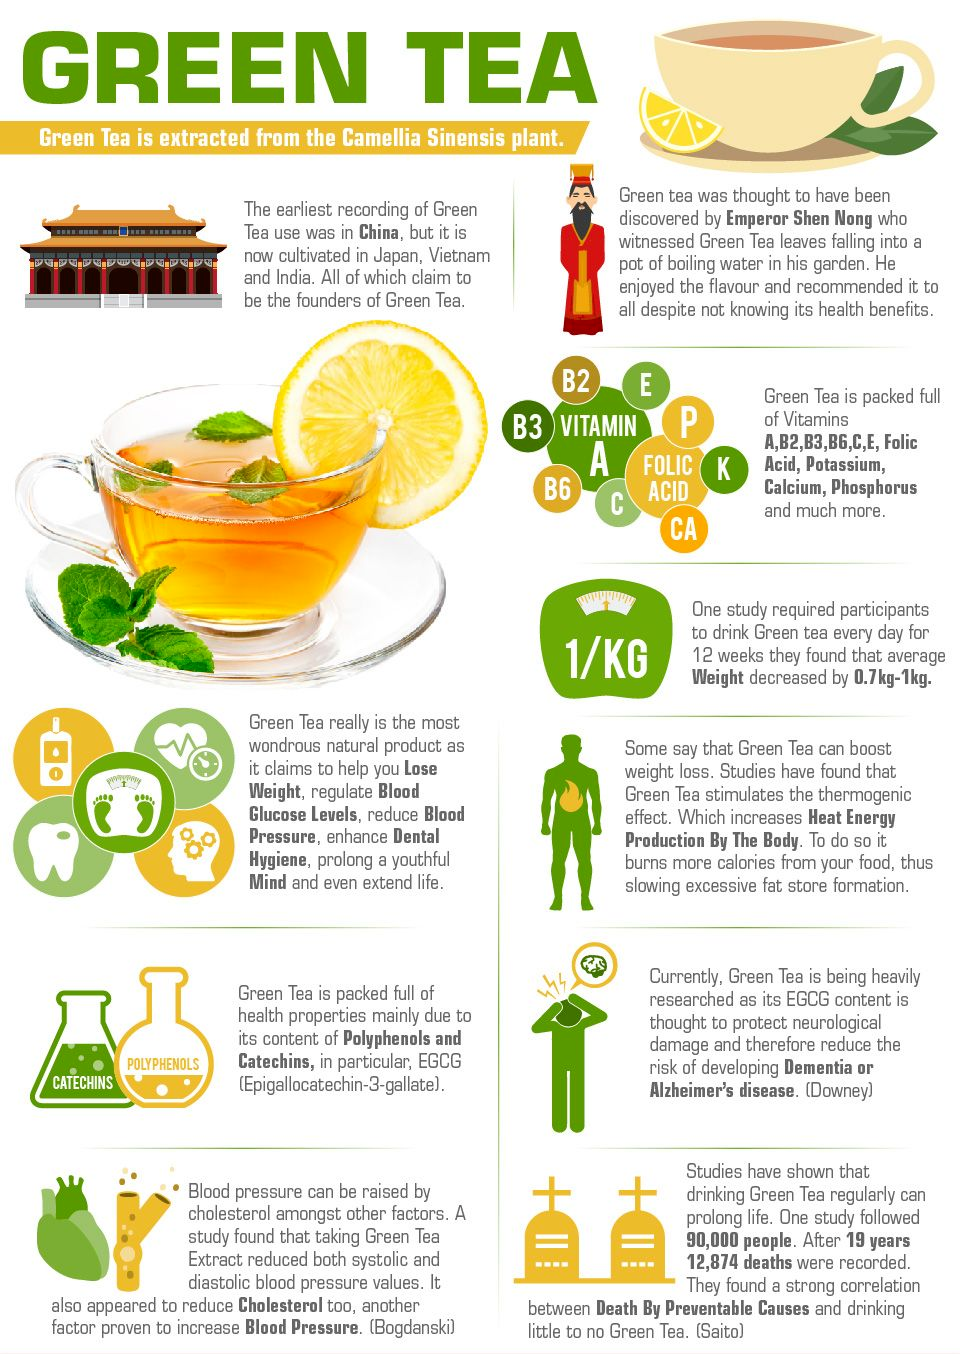 Weight Loss with Green Tea: Losing weight over tea doesn't it sound great?